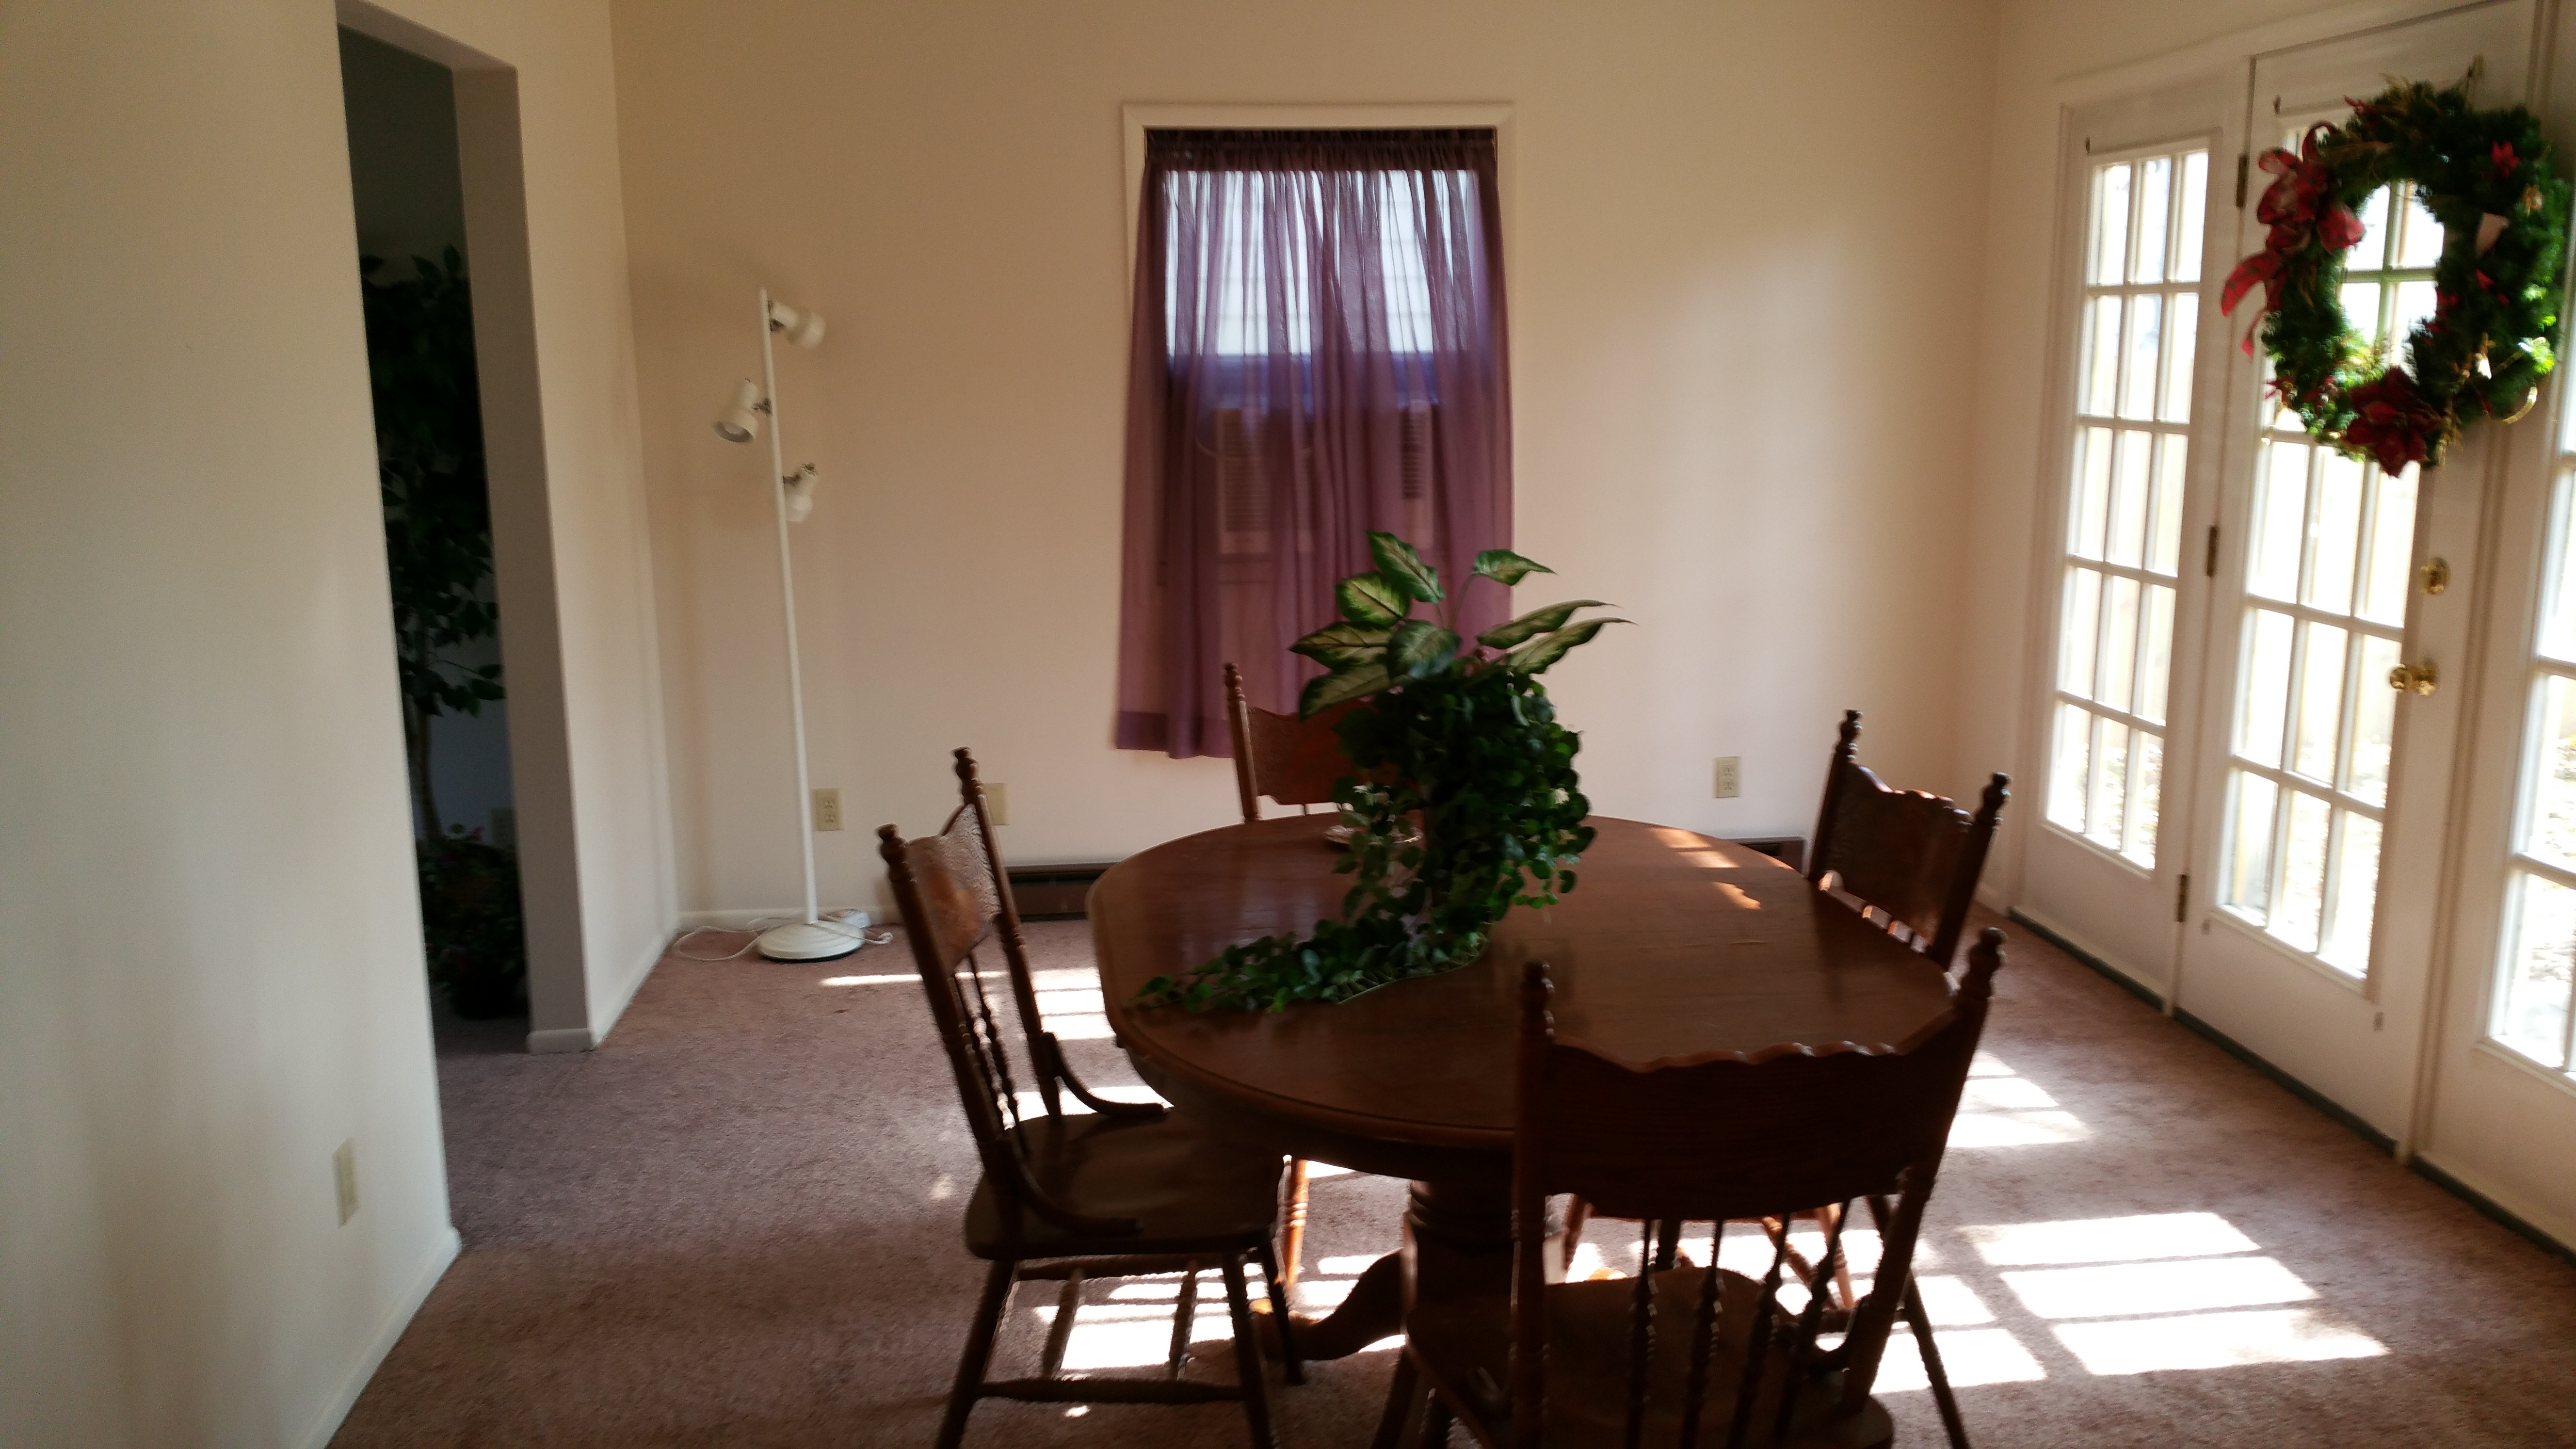 Space for a Large Kitchen Table!